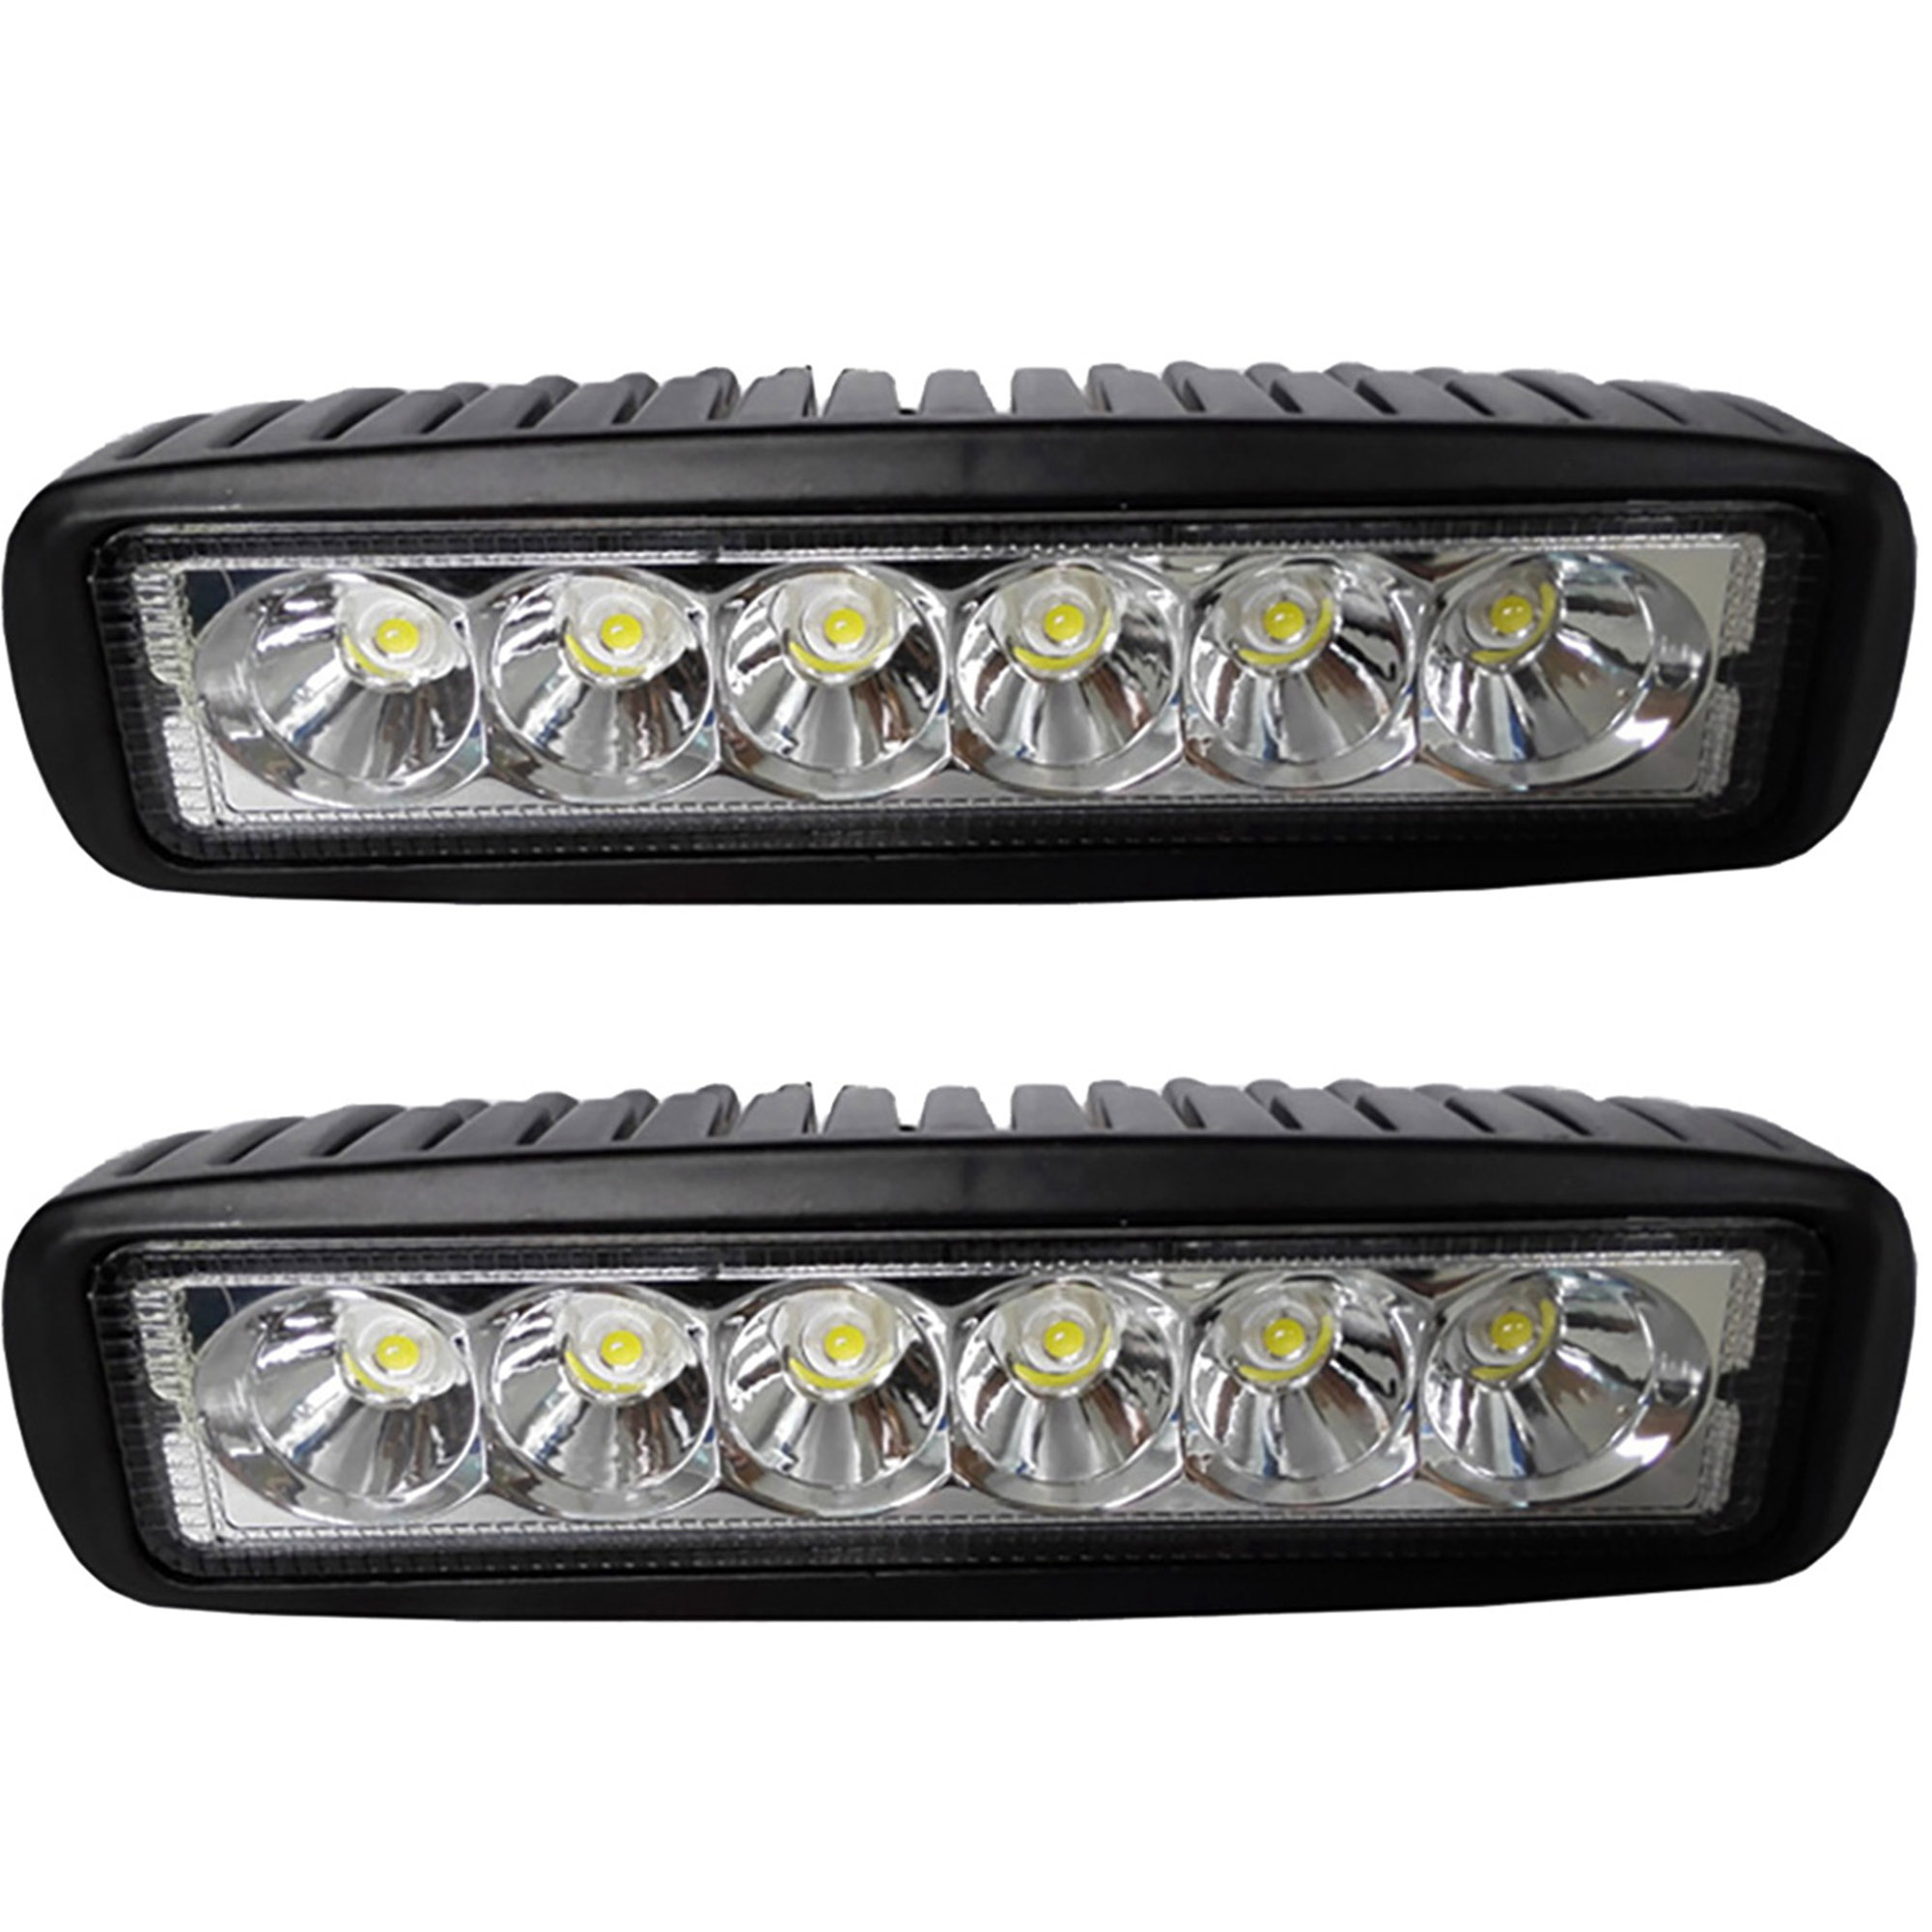 LotFancy Waterproof Driving Lights - 2PCS 18W Spot LED Work Light Bar with Mounting Bracket for Off Road Truck Jeep UTV ATV Cars Marine Boat